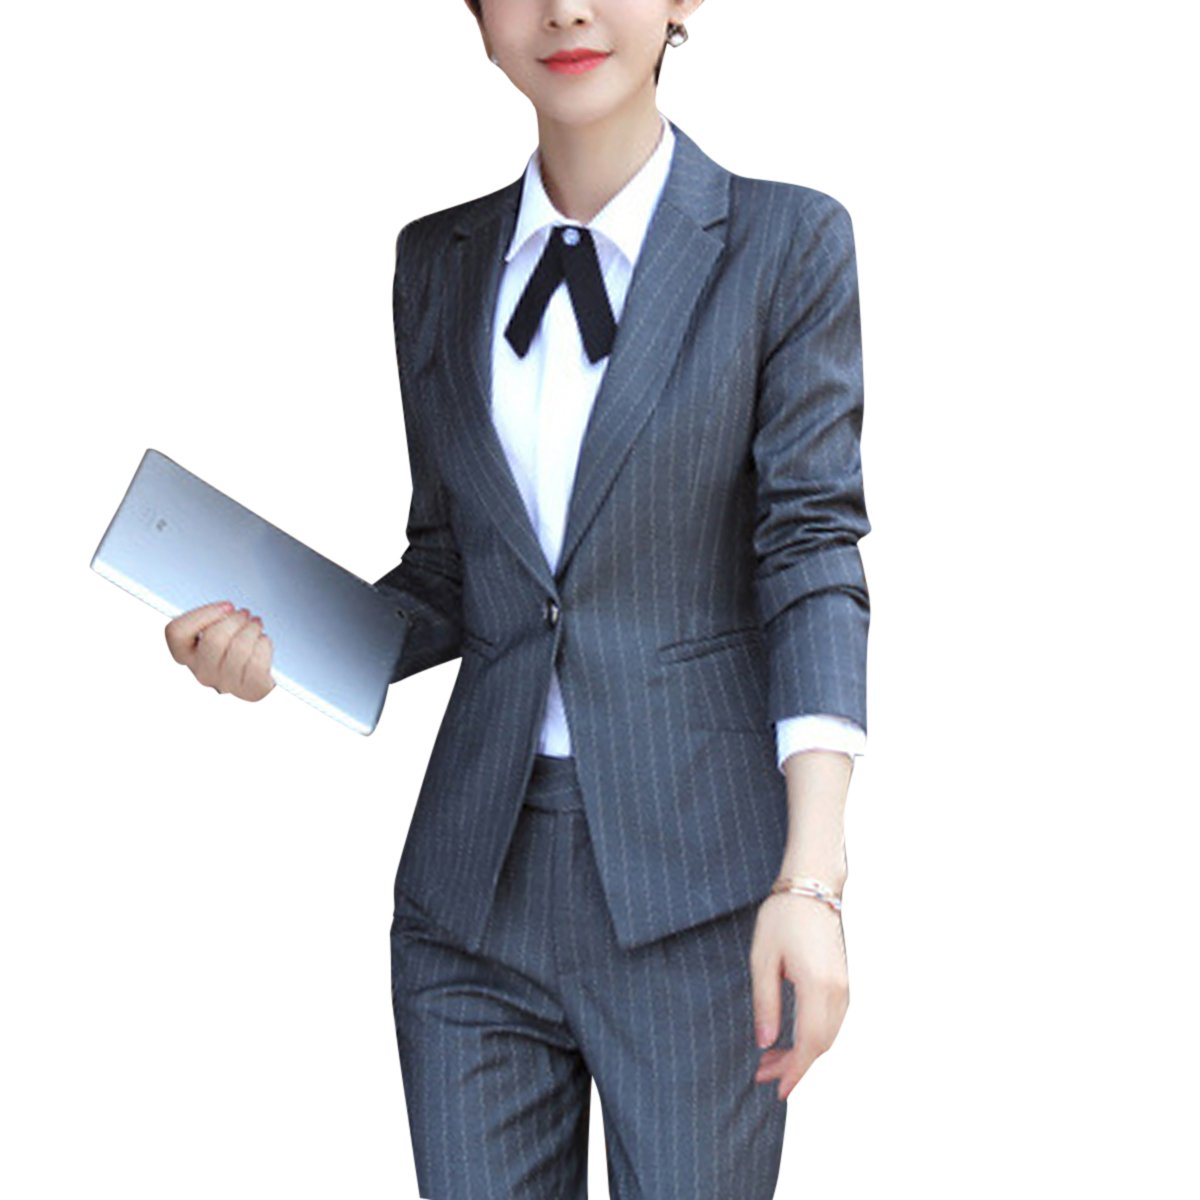 YUNCLOS Women's Two Piece Office Lady Stripes Business Suit Set Slim Fit Blazer Jacket Pant by YUNCLOS